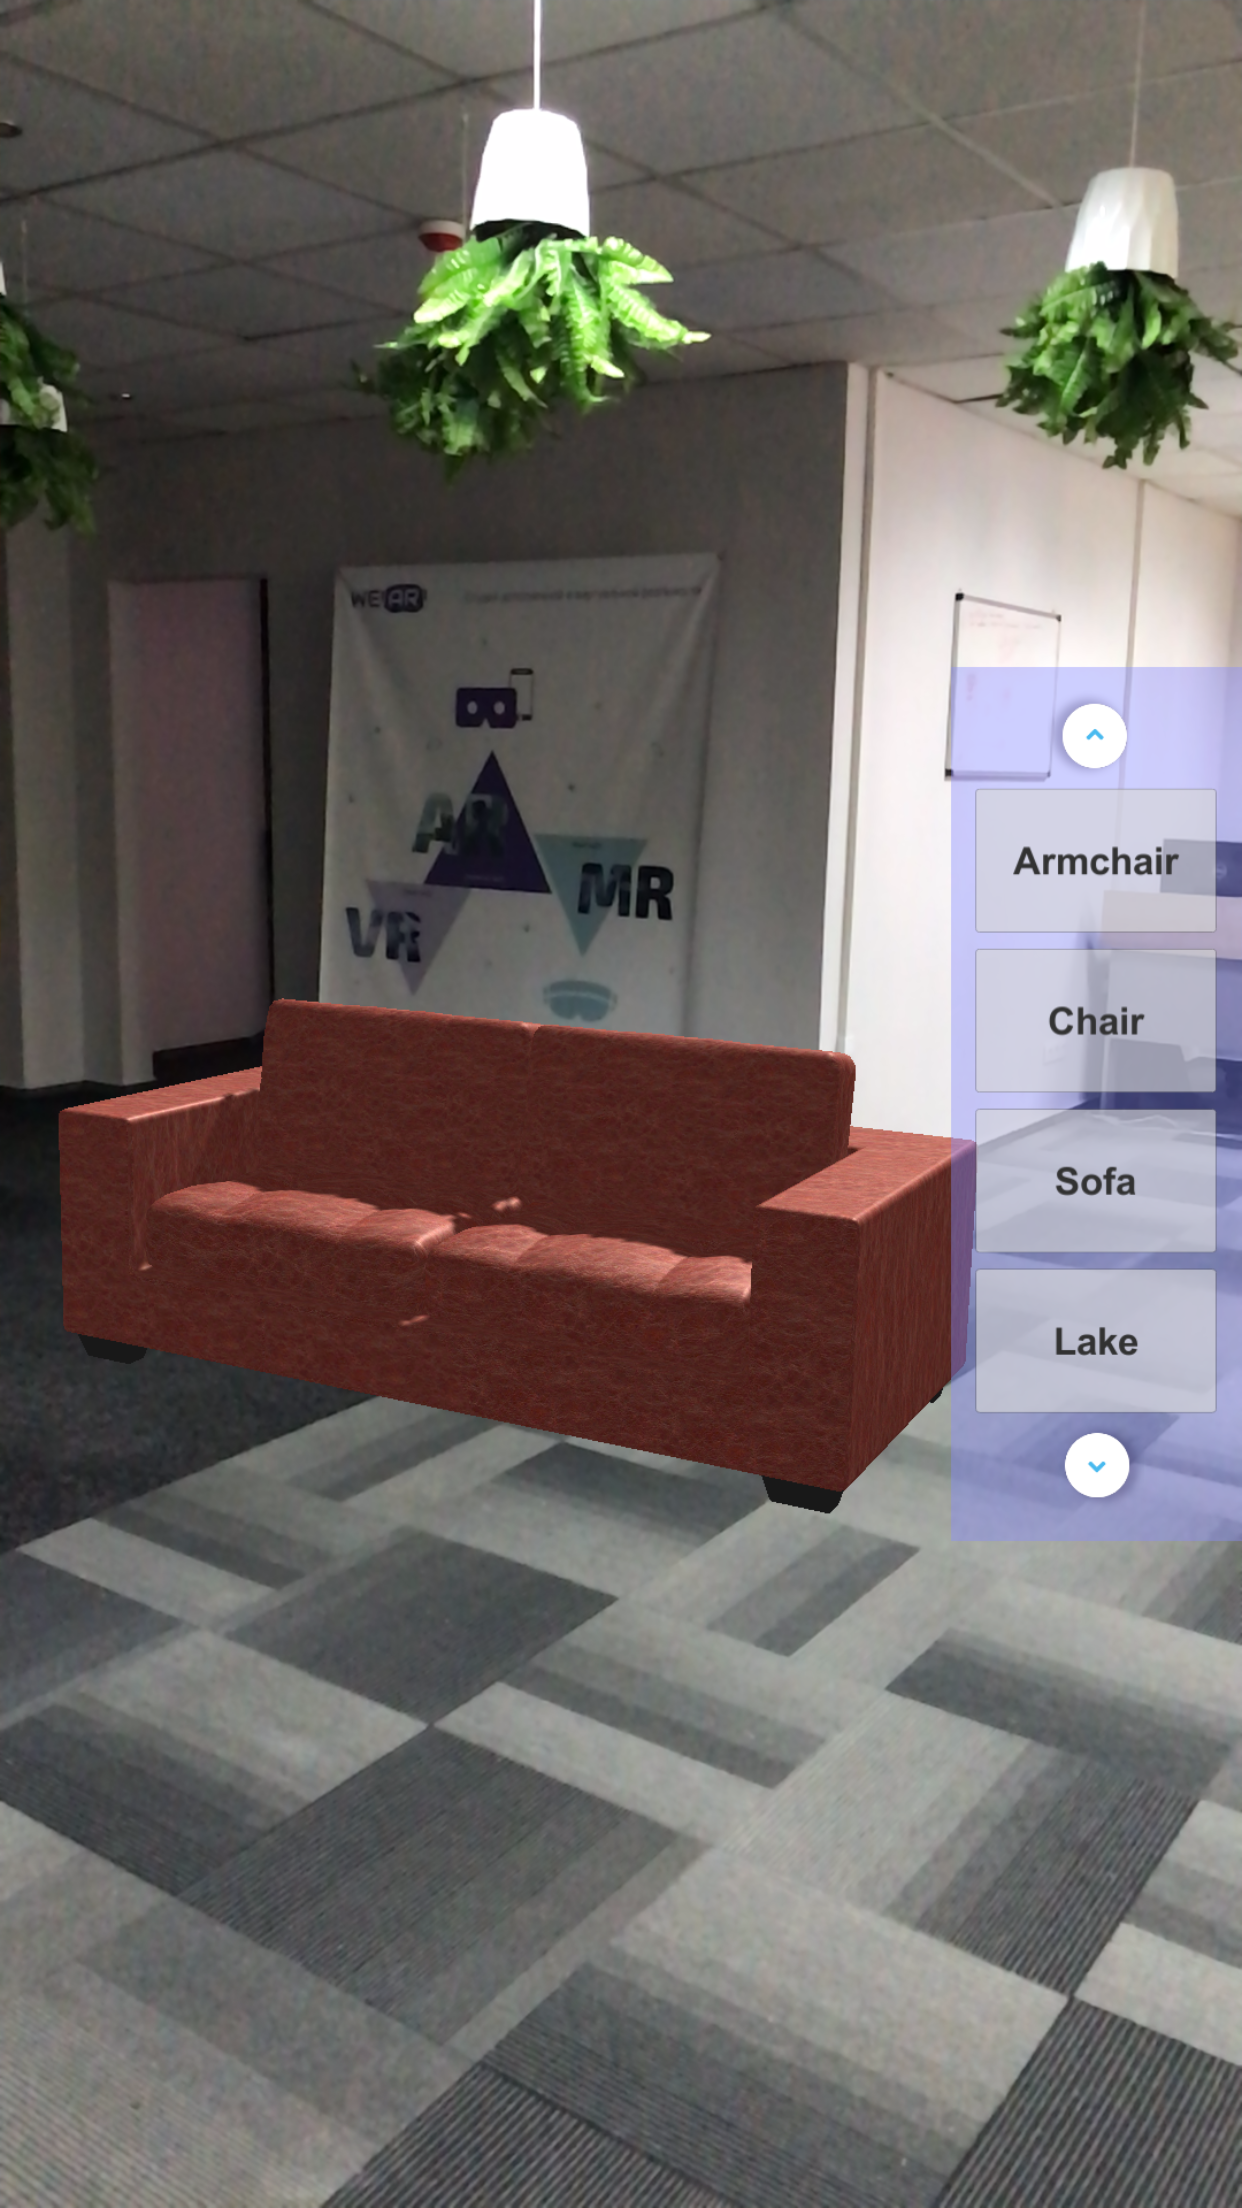 AR furniture placing